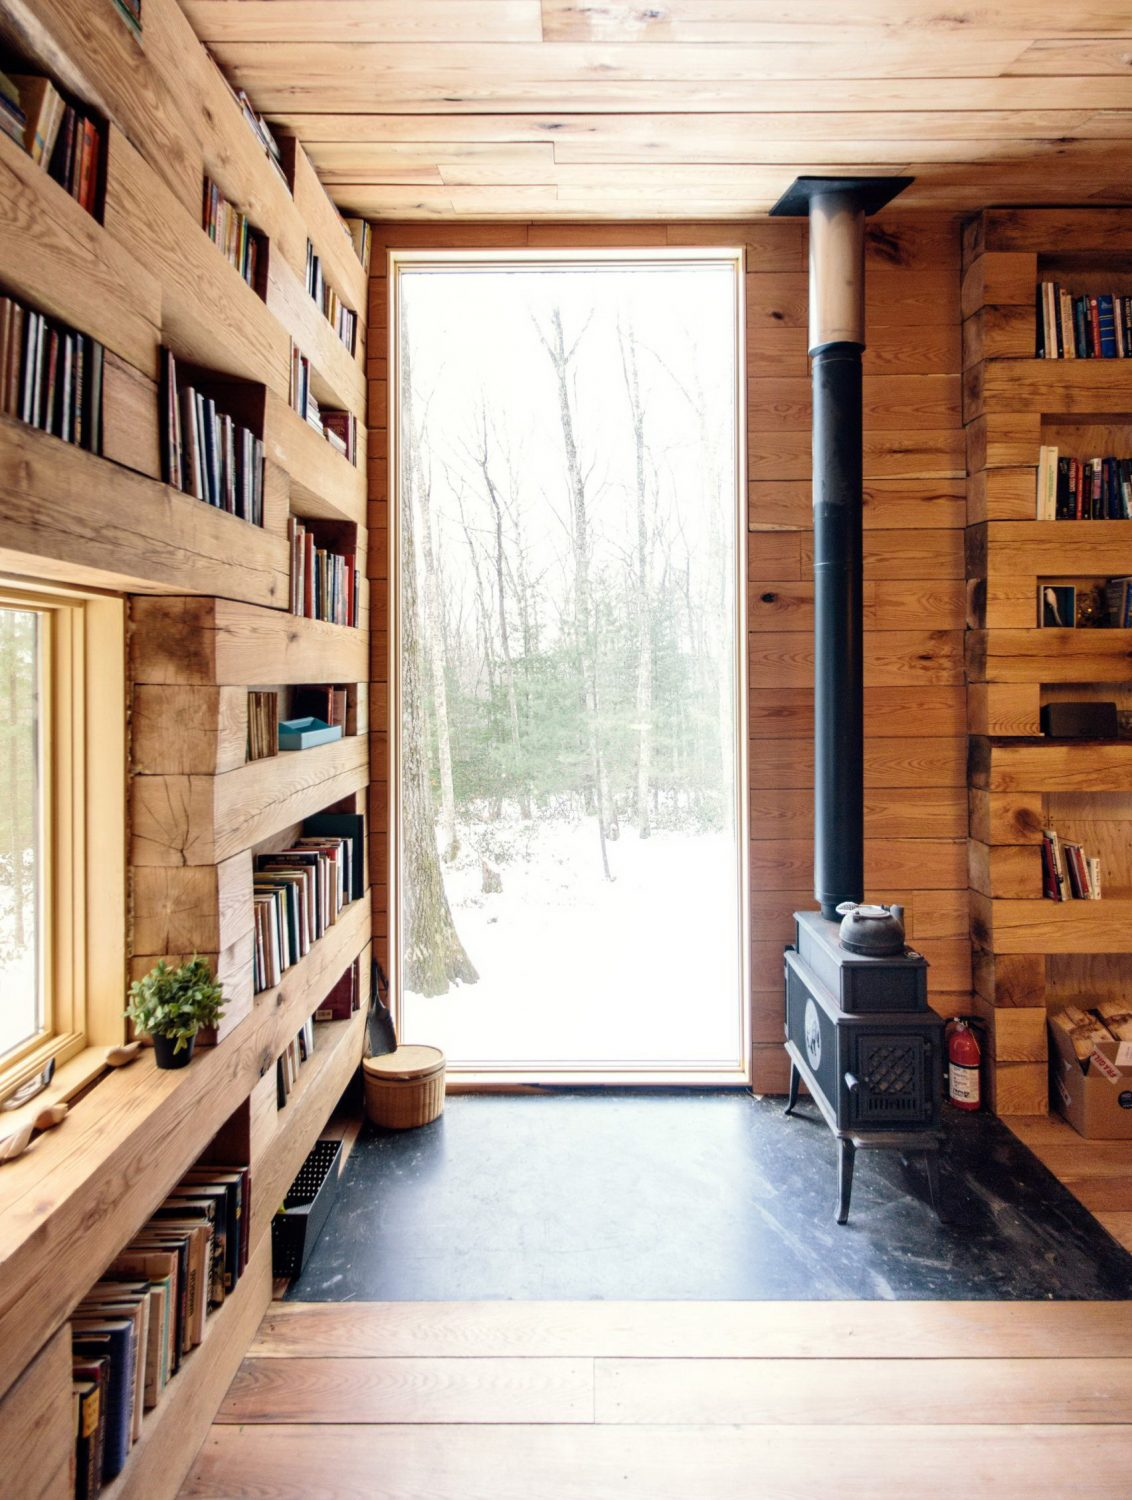 Hemmelig Rom | Library Cabin in the Forest by Studio Padron